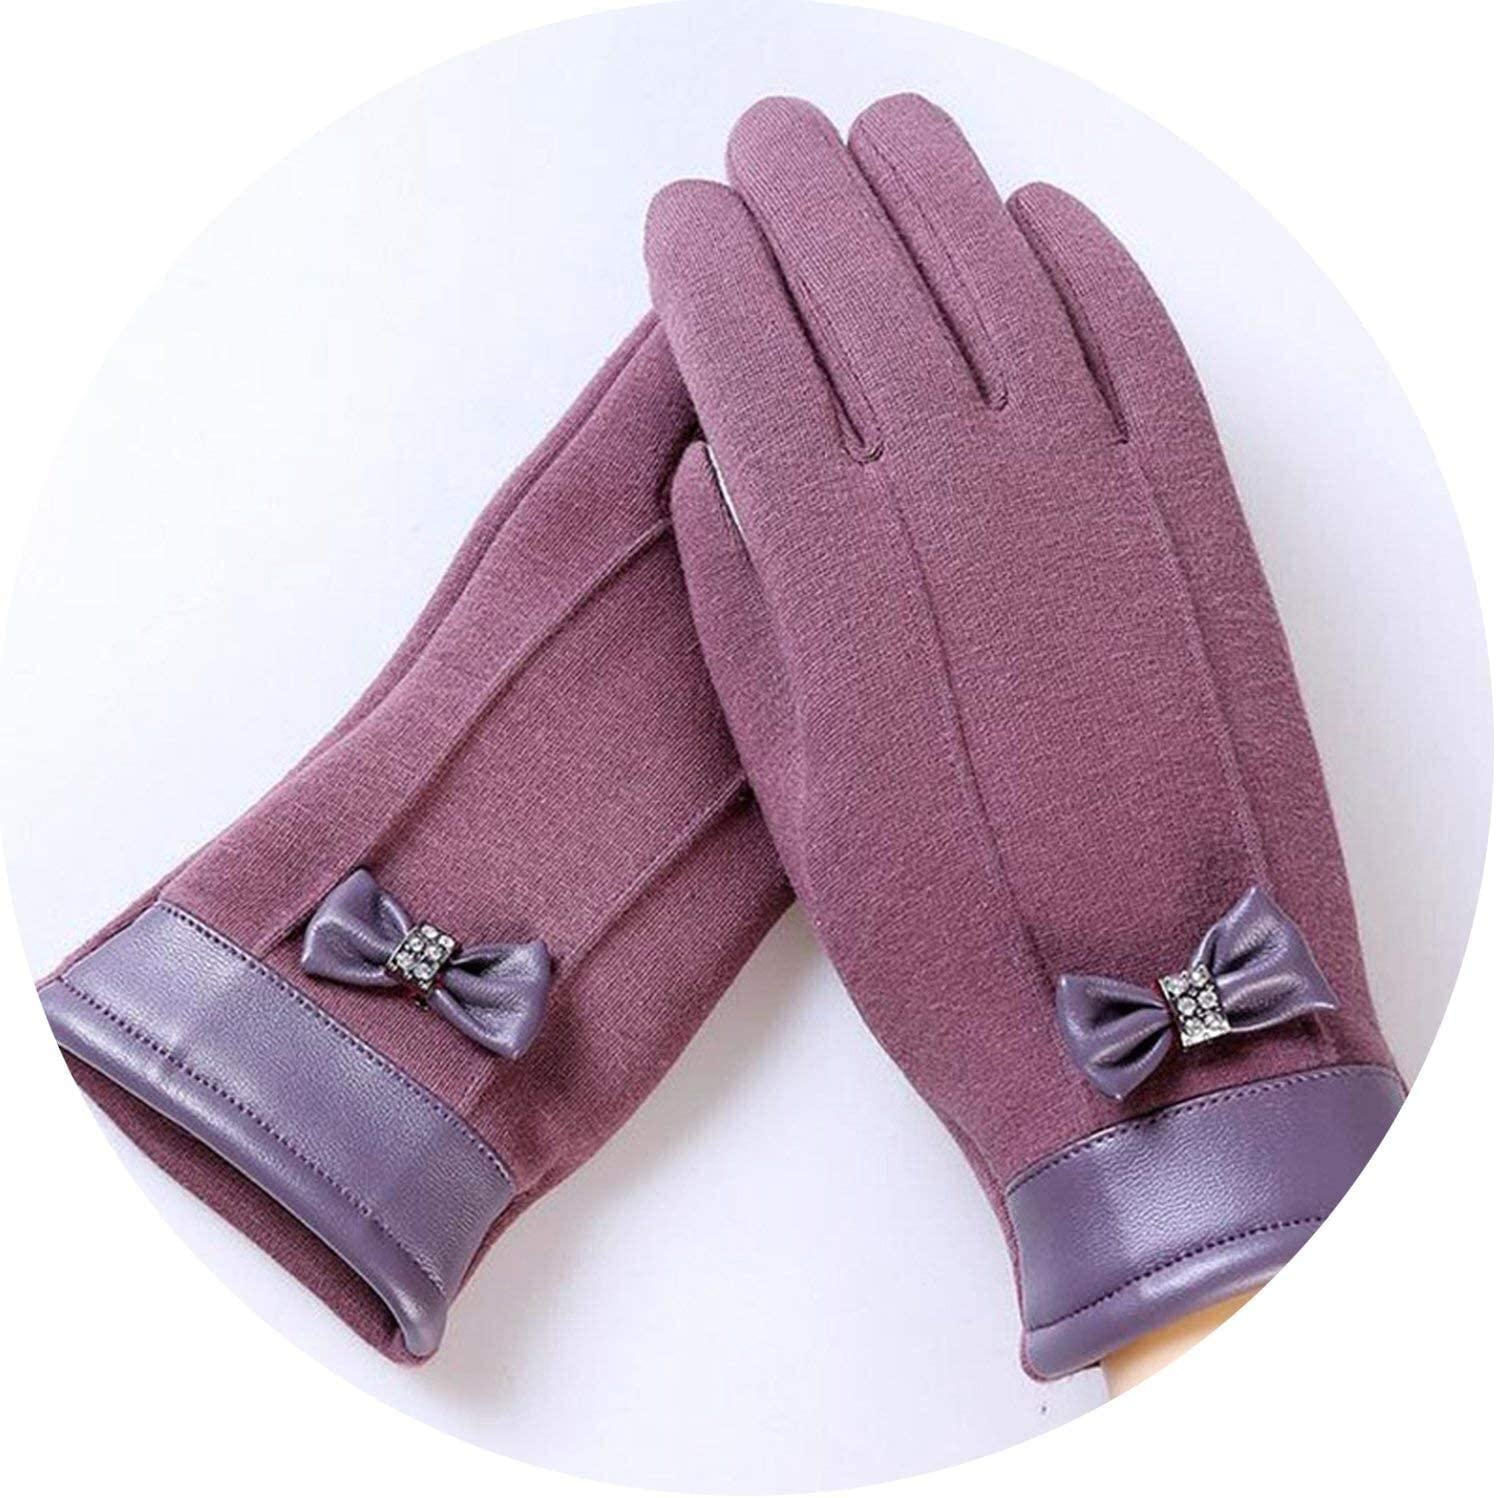 Samantha Warm Gloves Elegant Plush Female Lace Leather Wrist Bow Tie Gloves Winter Sports Fitness Women Phone Touch Screen Mittens Gloves (Color : Bean Color, Size : Oneszie)